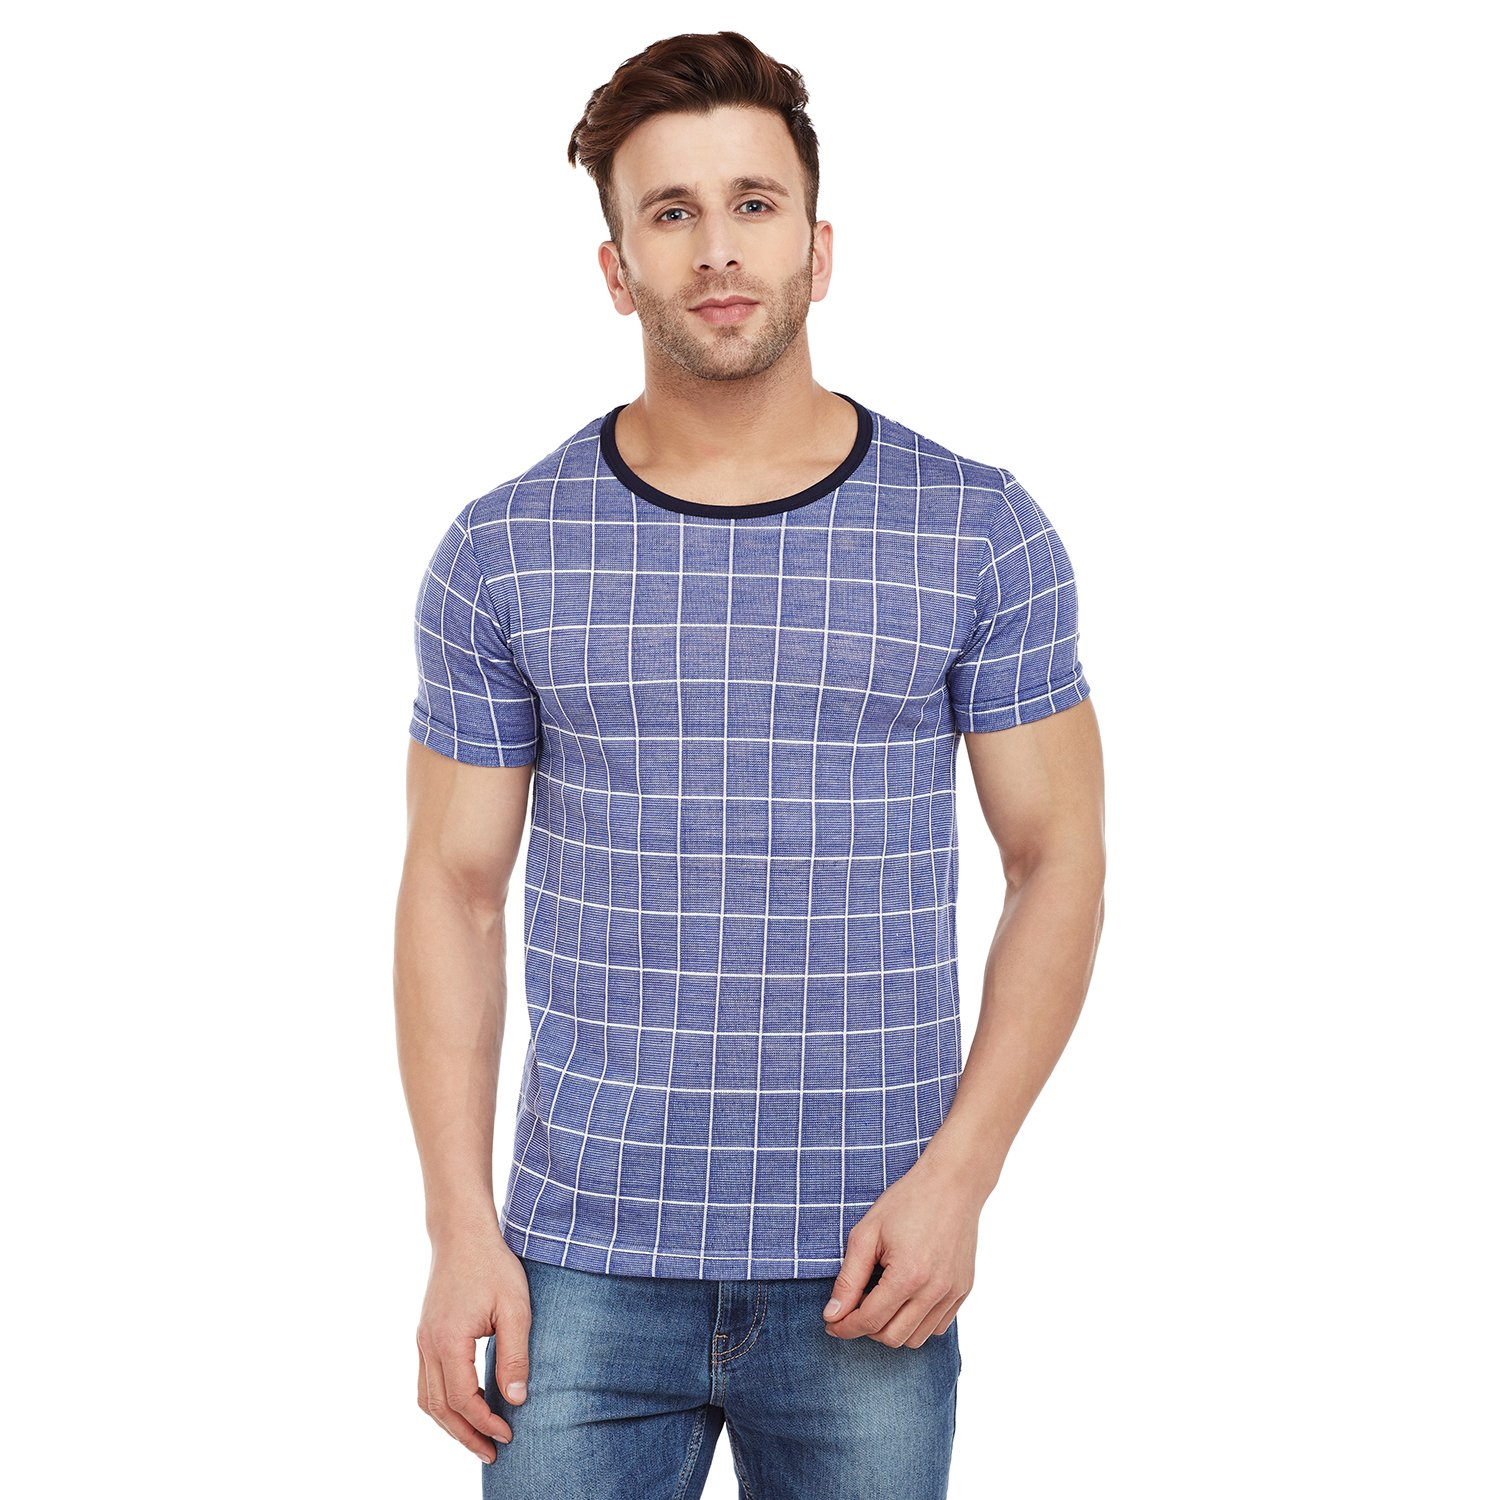 cb66abc65 VIMAL Black Check Print Round Neck Tshirt for Men: Amazon.in: Clothing &  Accessories